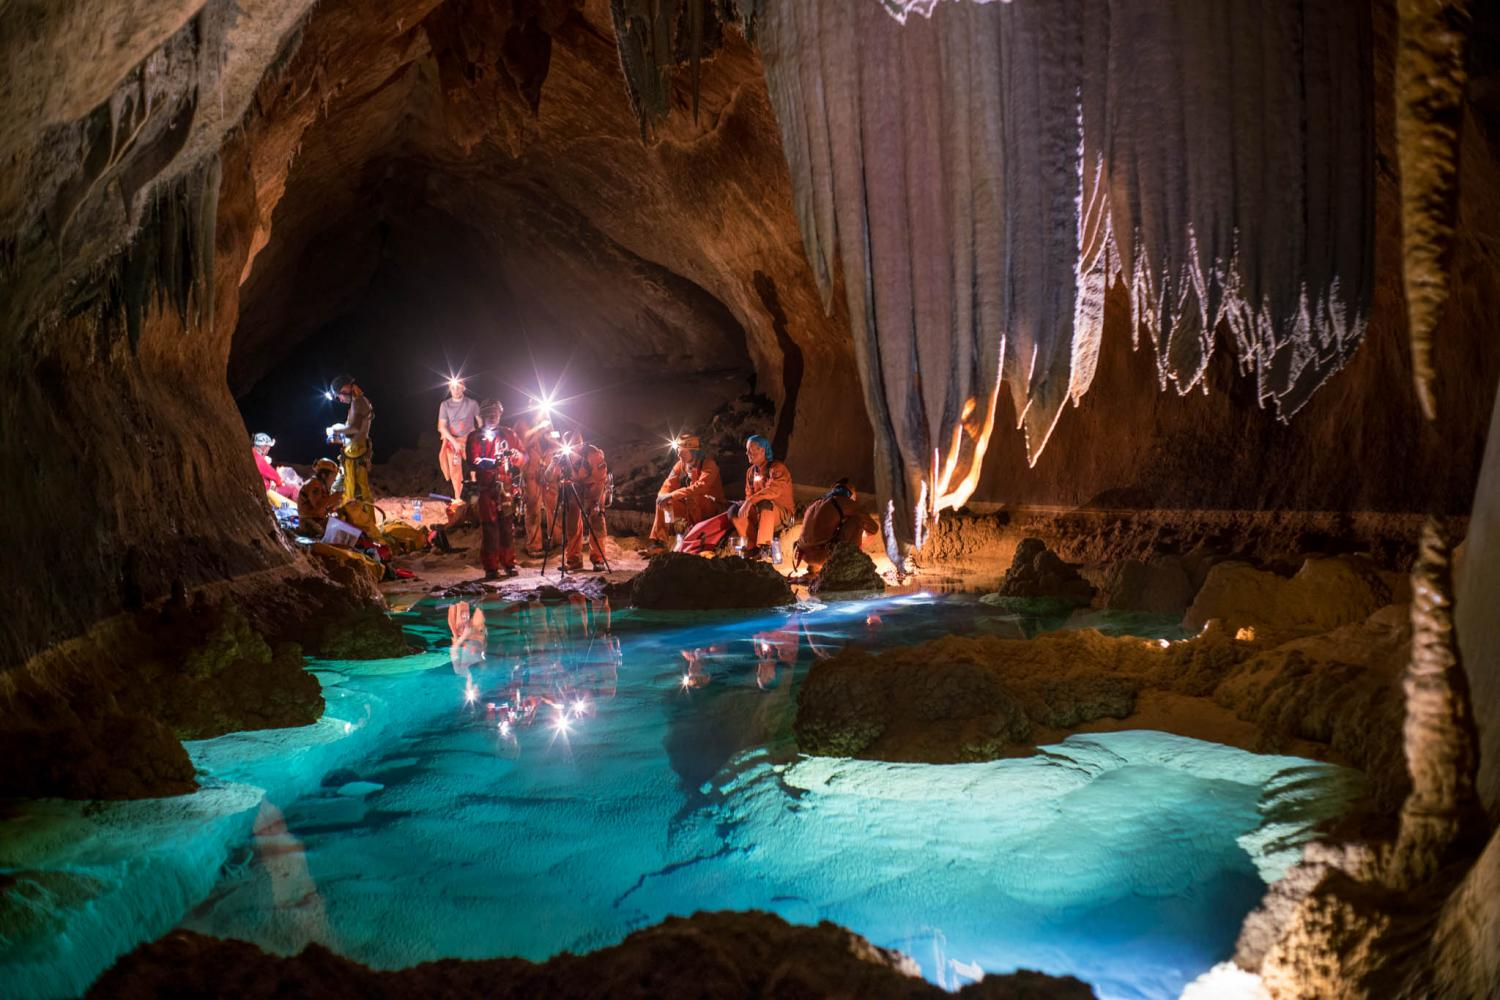 Image: Spelunking astronauts train for teamwork